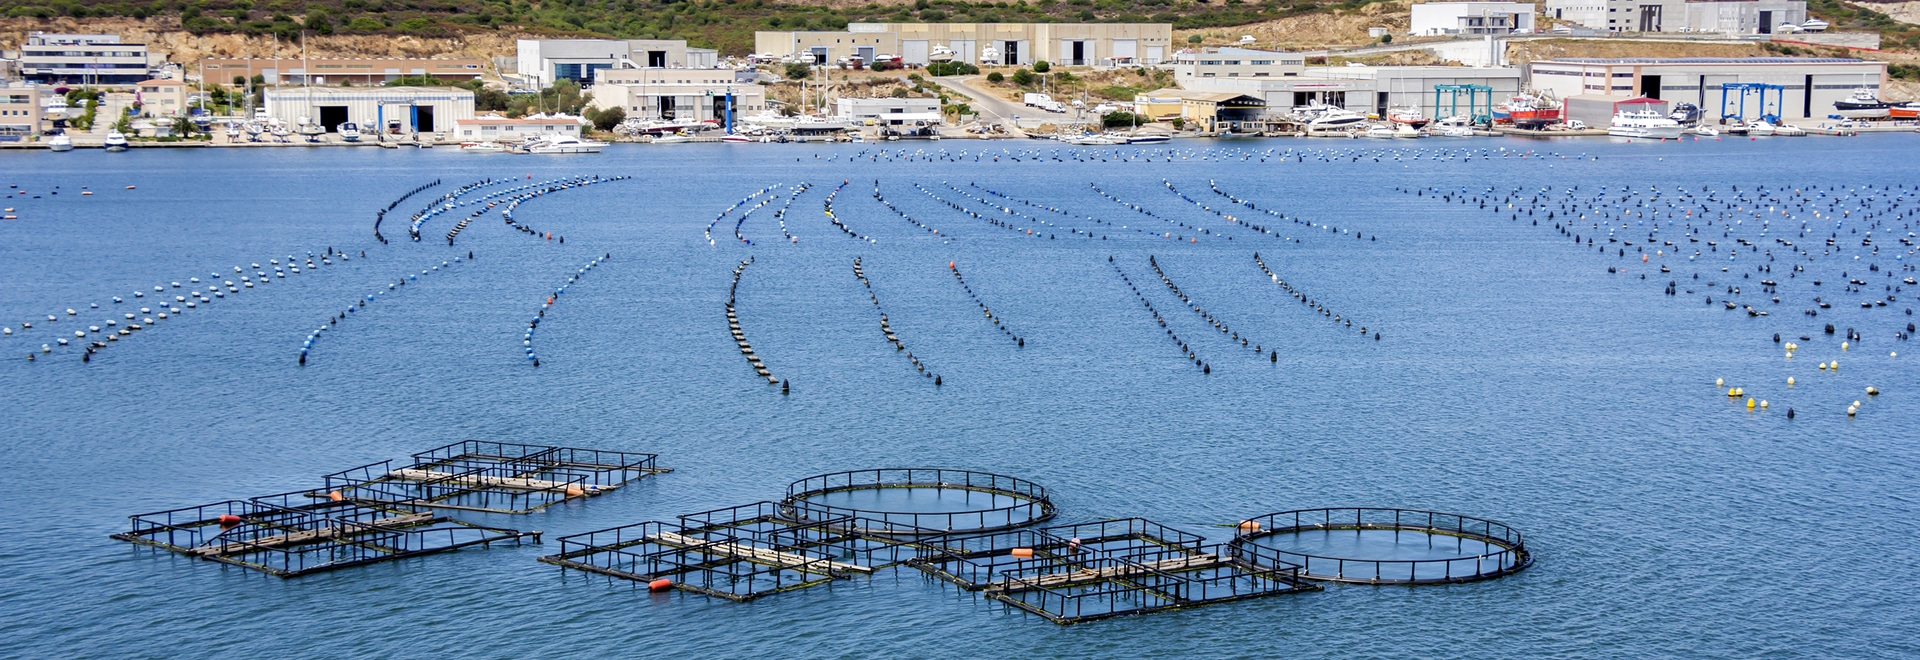 Recently published study evaluates potential for ocean farming